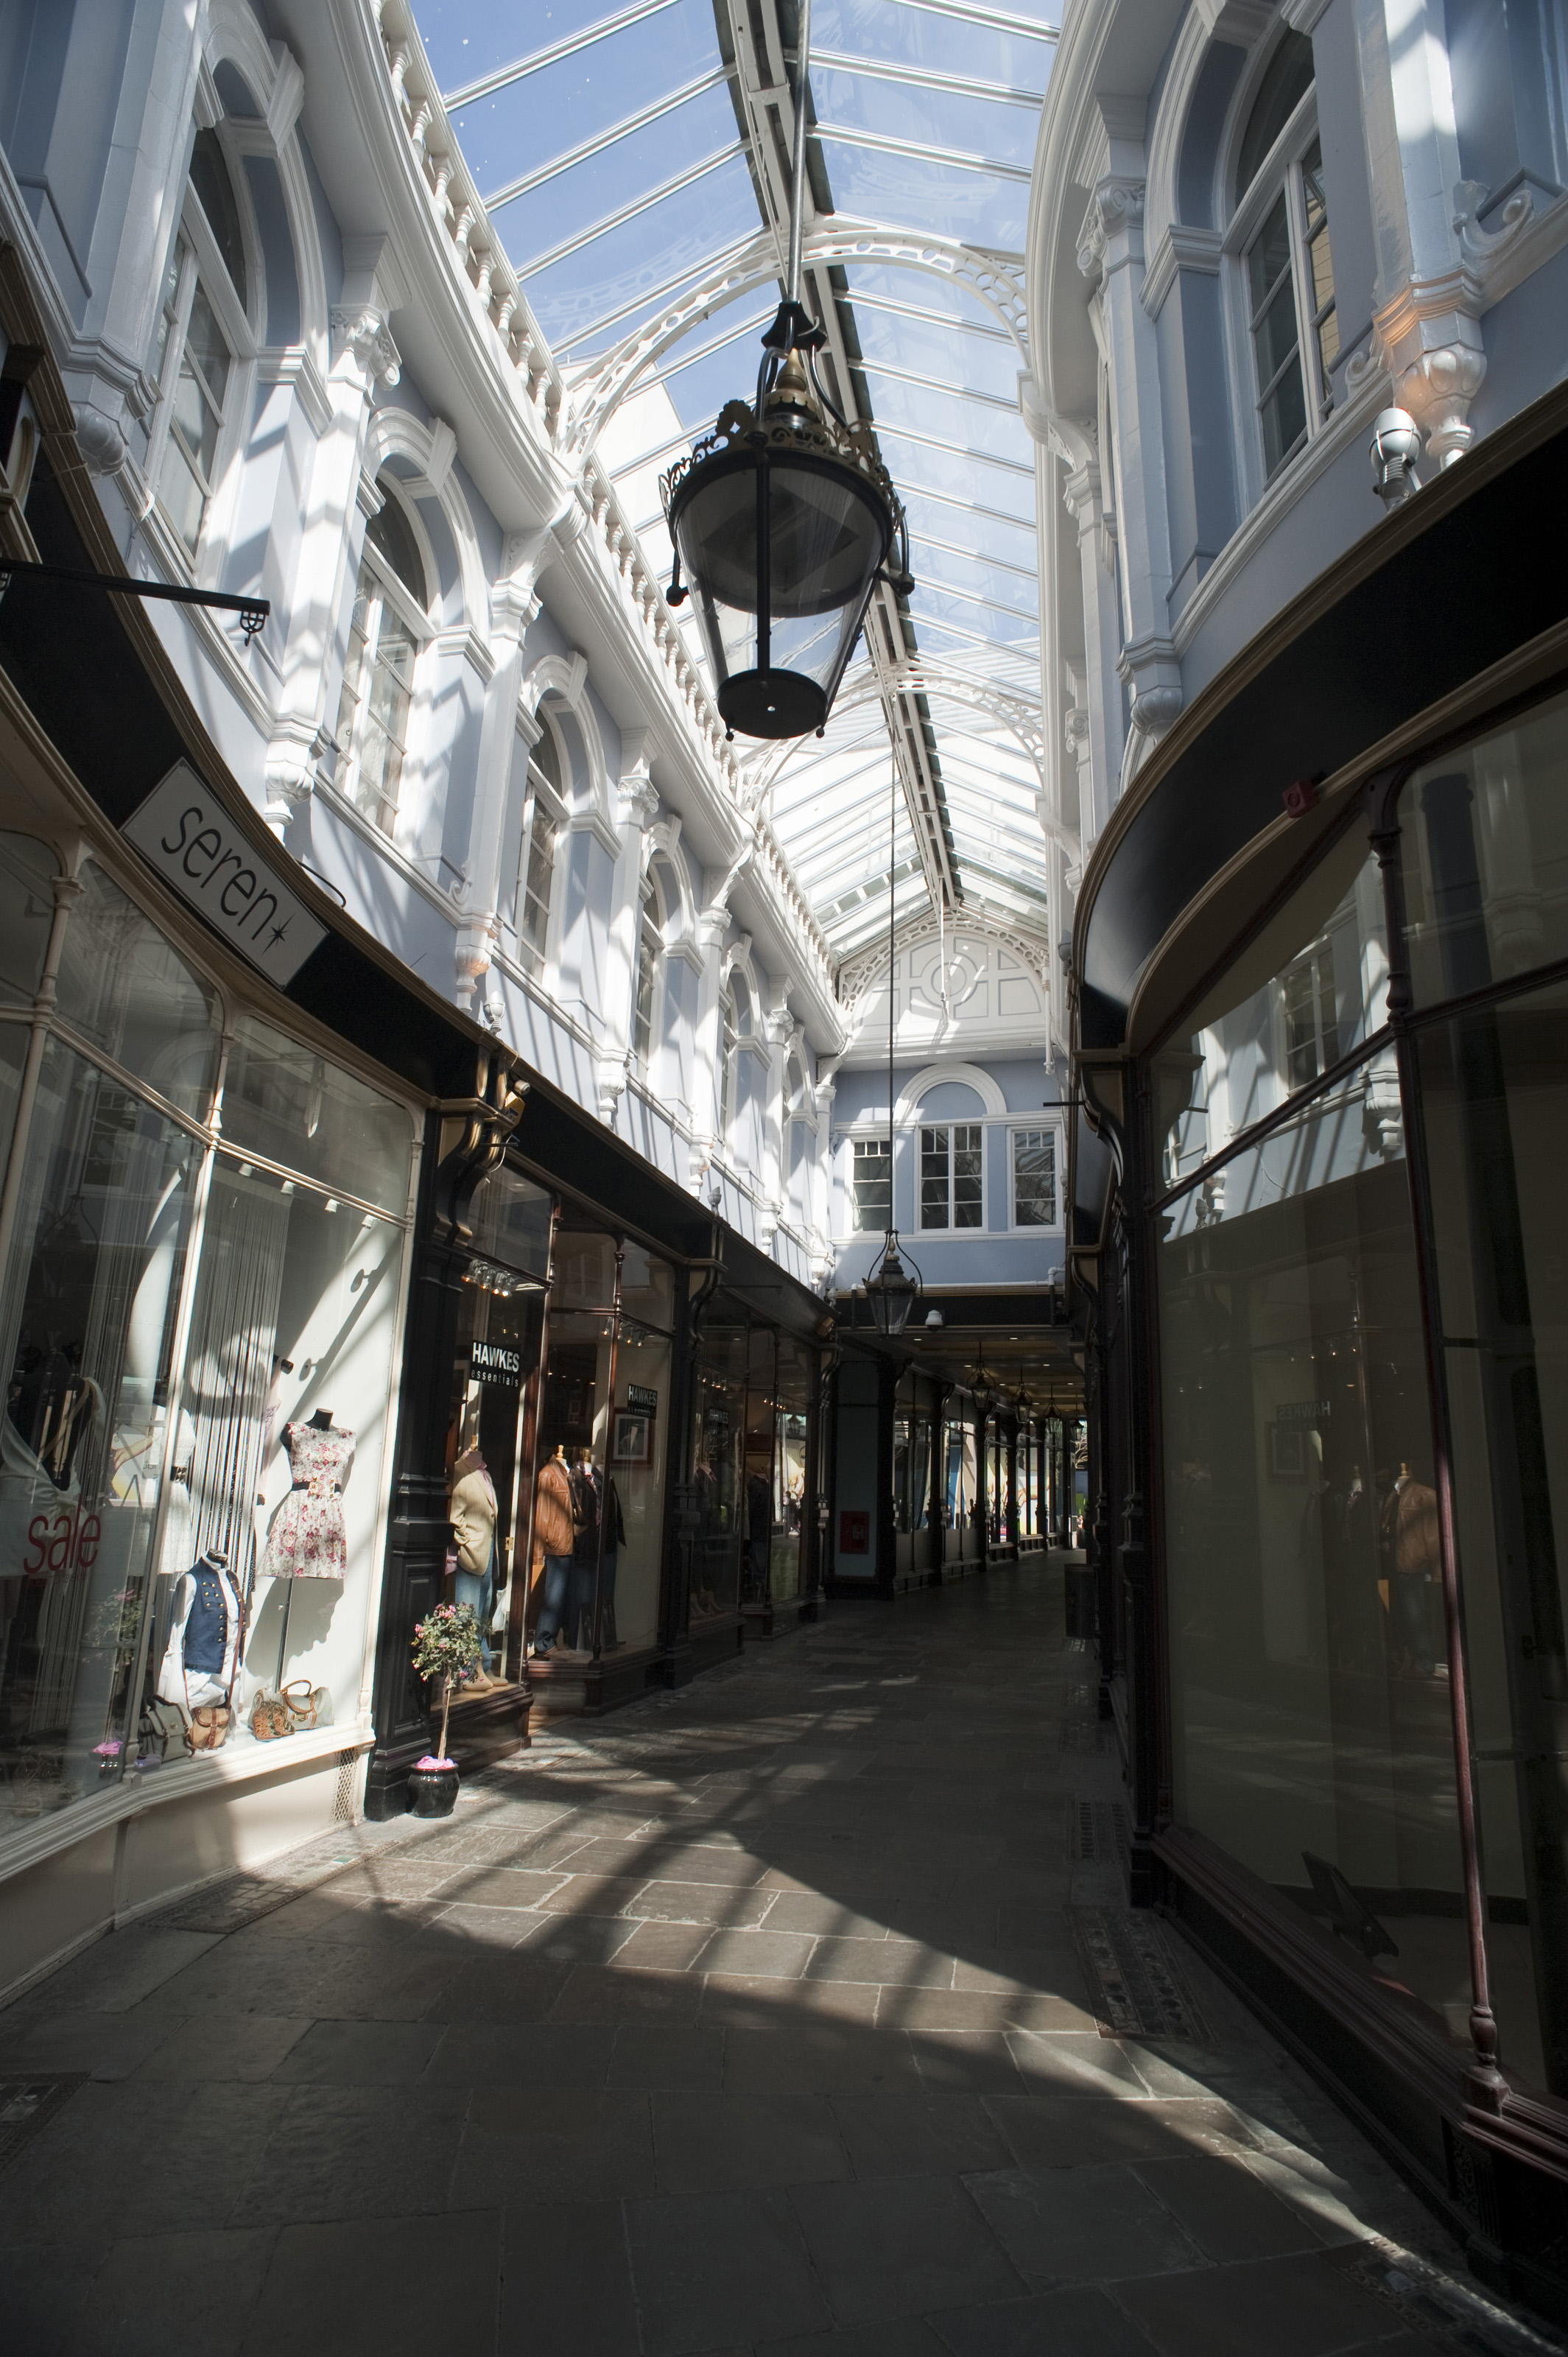 morgan arcade interior cardiff 7022 stockarch free stock photos